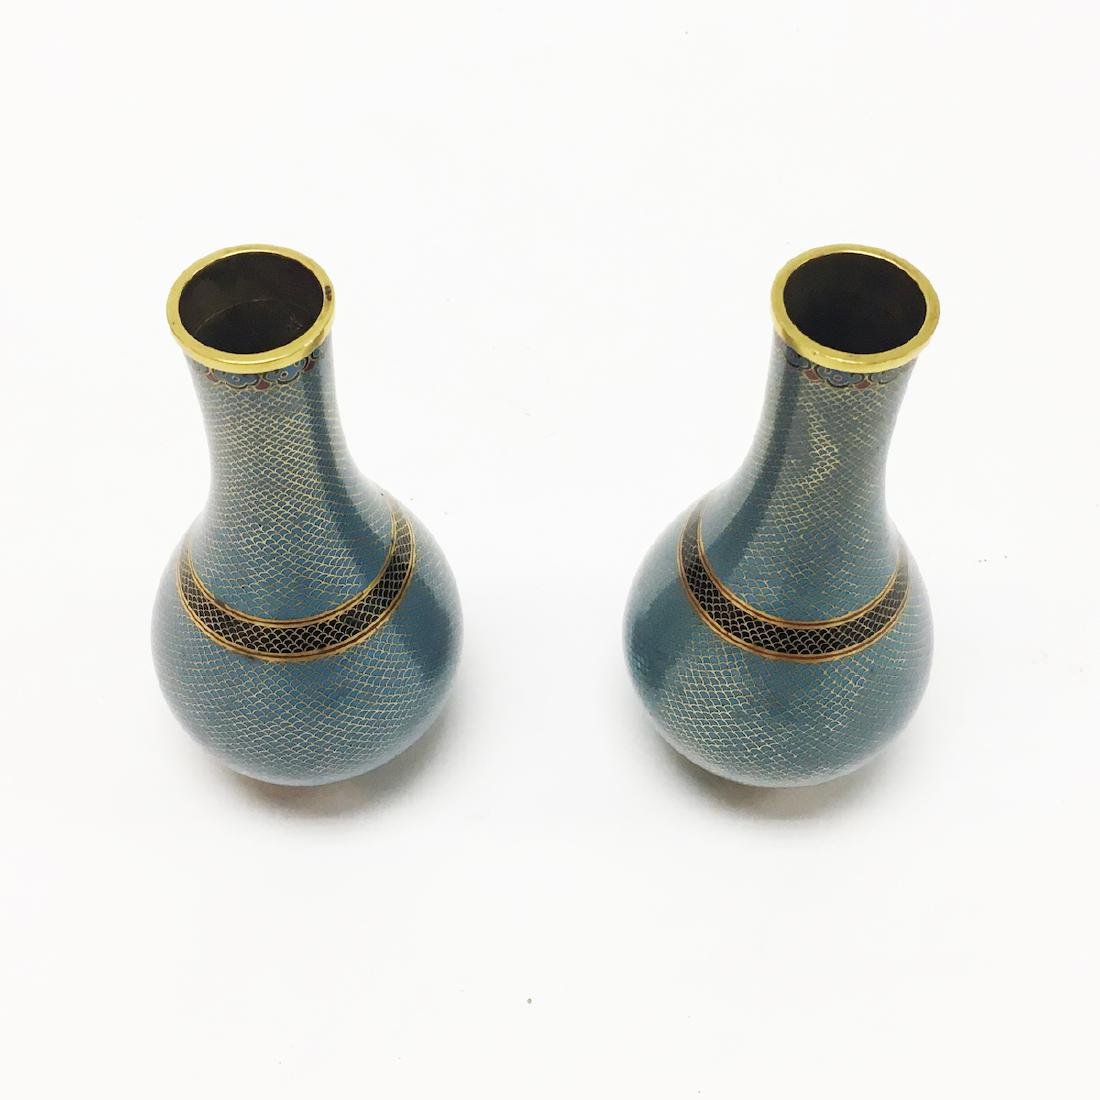 Pair of Chinese Cloisonne Vases - 2